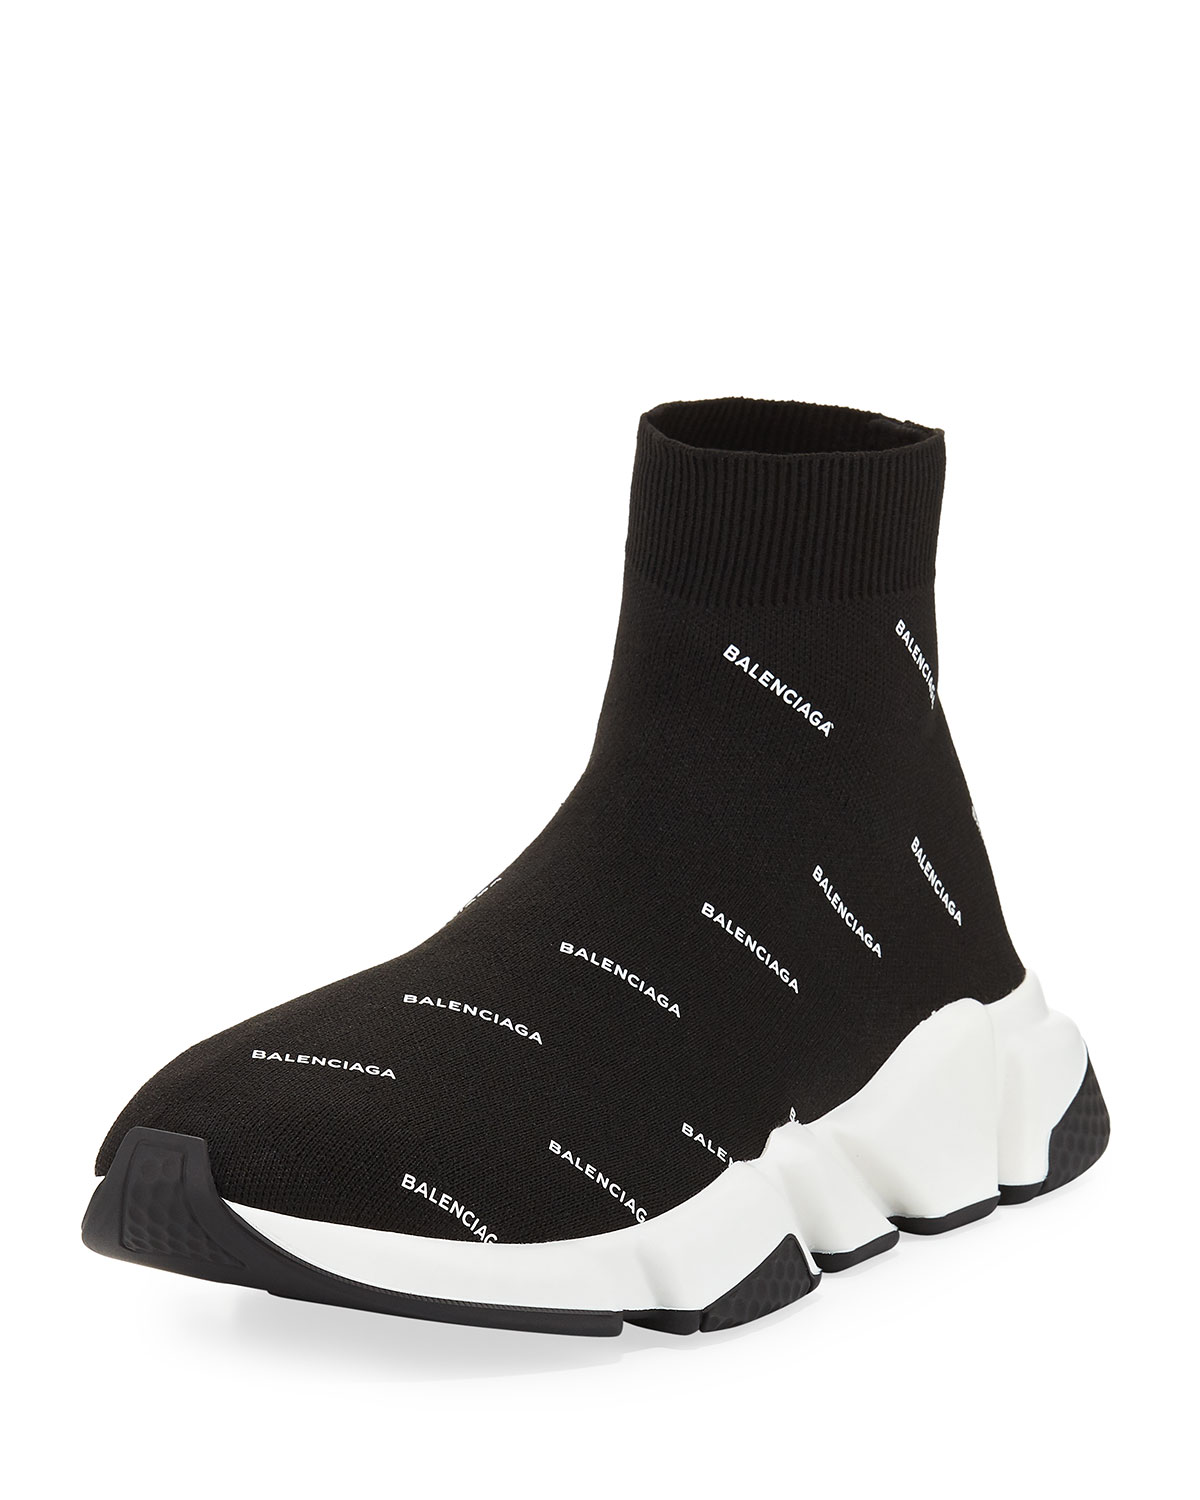 9761bf88afd57 BalenciagaMen s Speed Signature Mid-Top Trainer Sock Sneakers. Free Shipping  ...